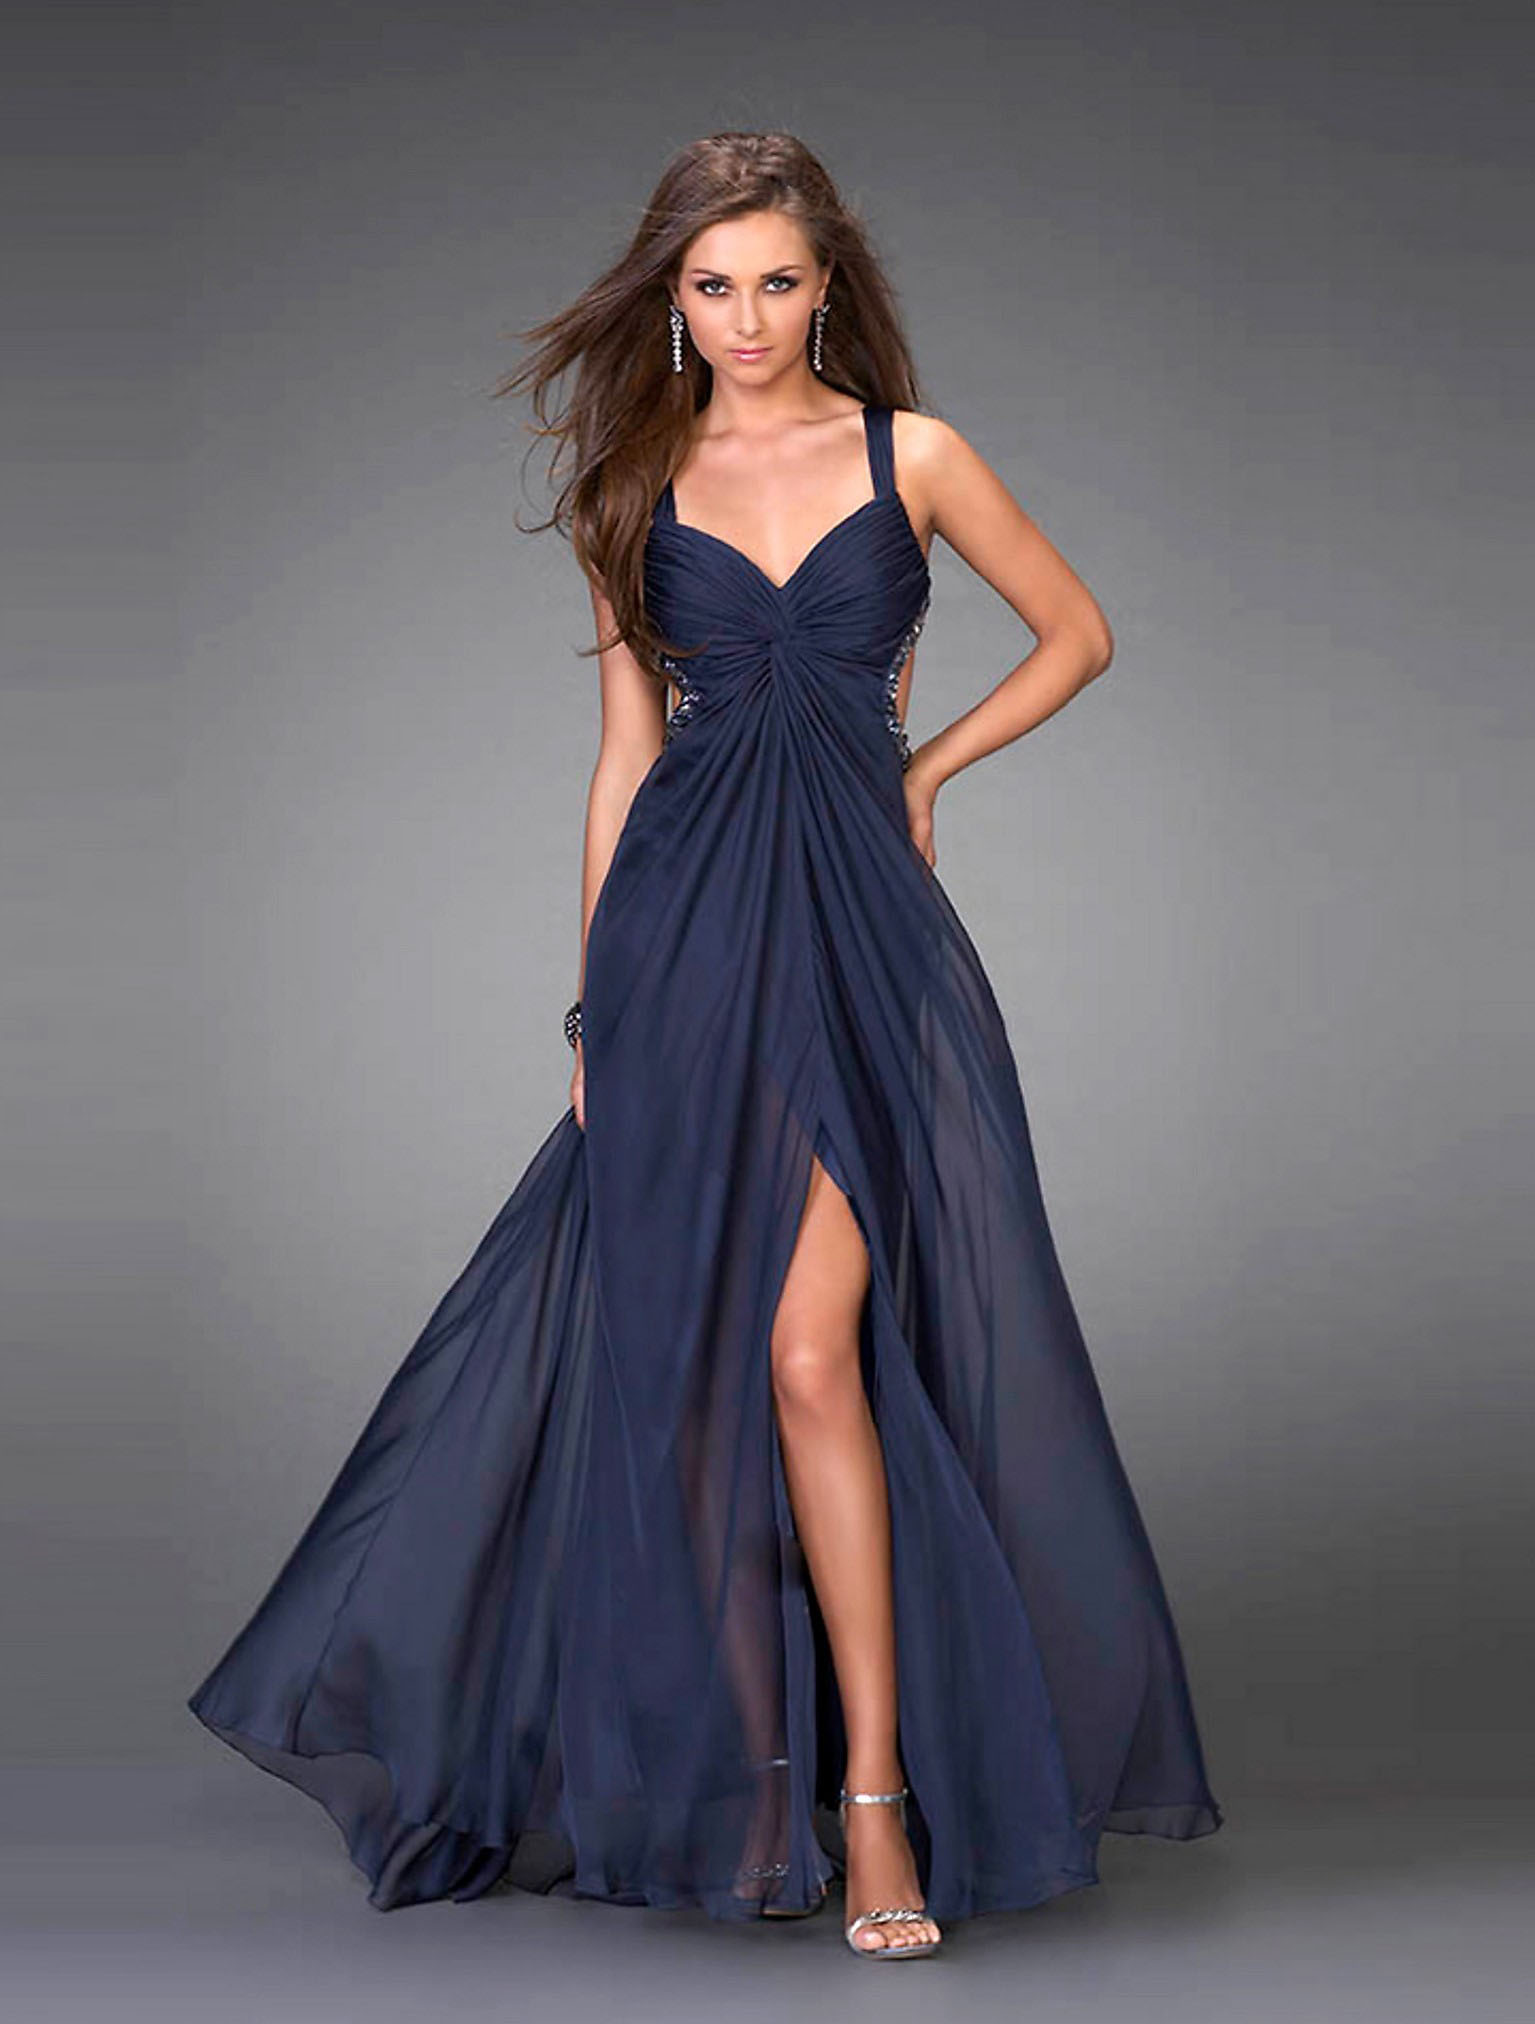 Blue Prom Dresses | Dressed Up Girl